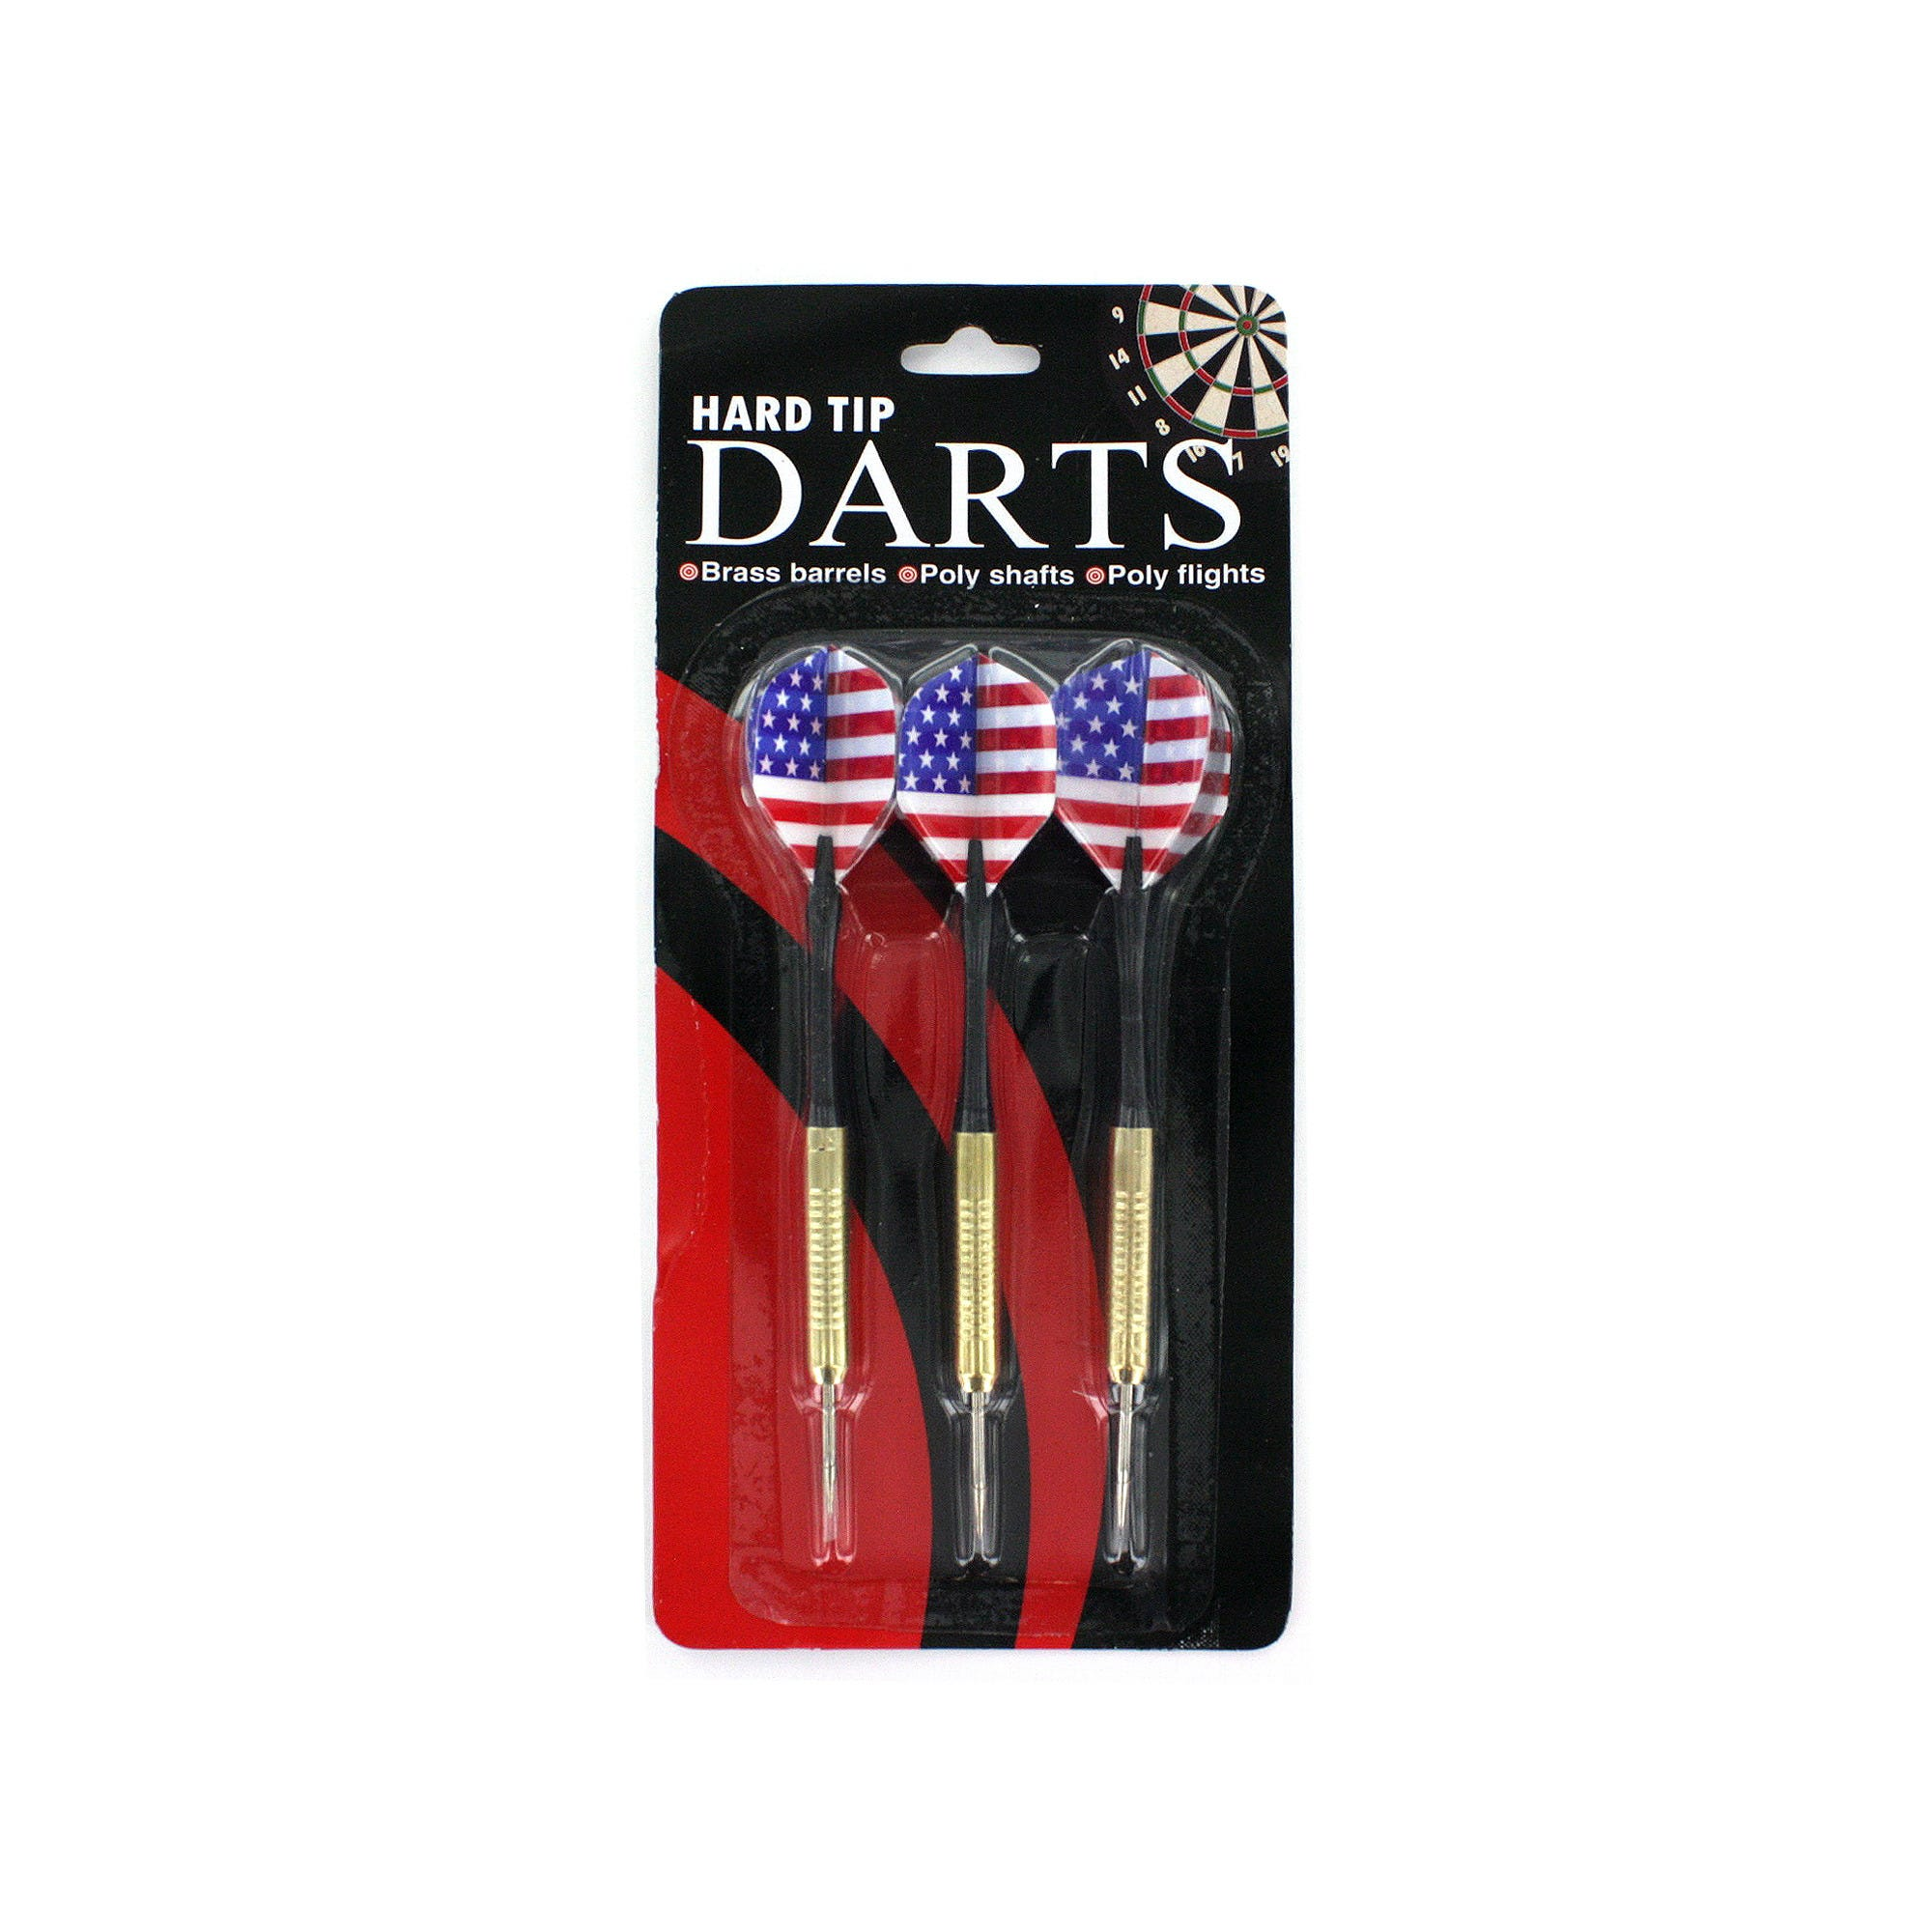 hard-tip-DARTS-with-american-flag-design